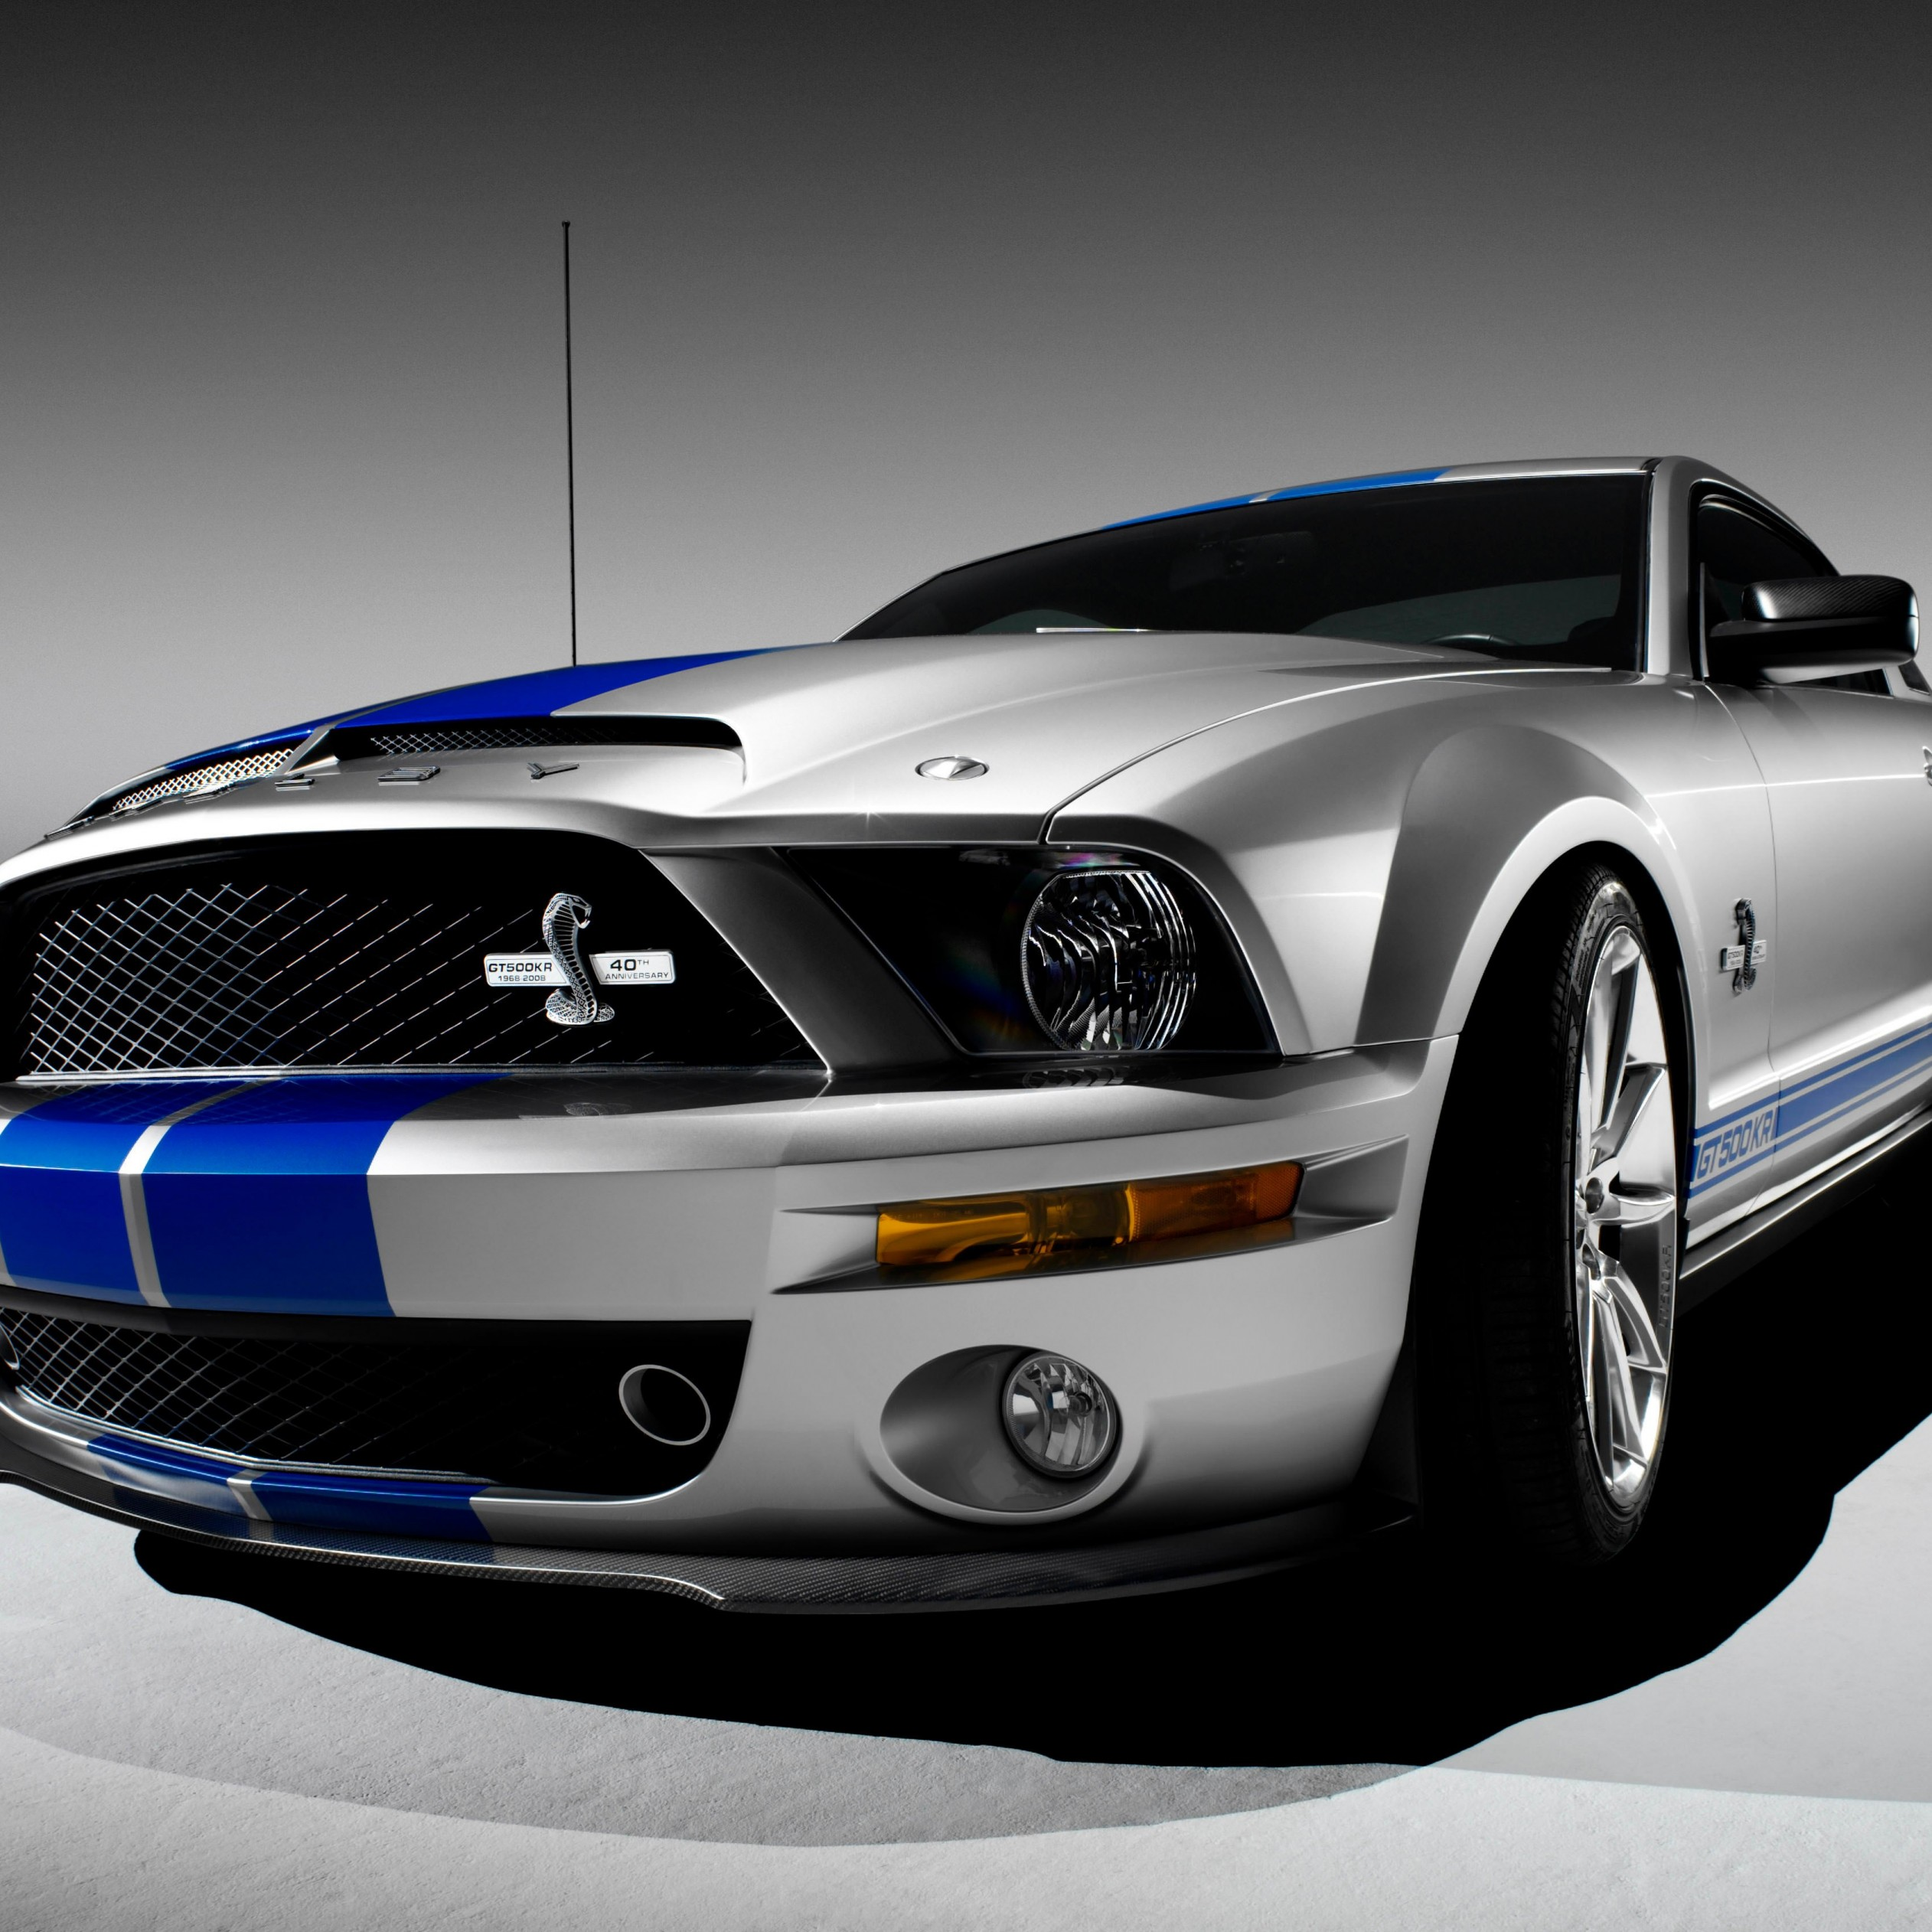 Shelby Mustang GT500KR Wallpaper for Apple iPad mini 2